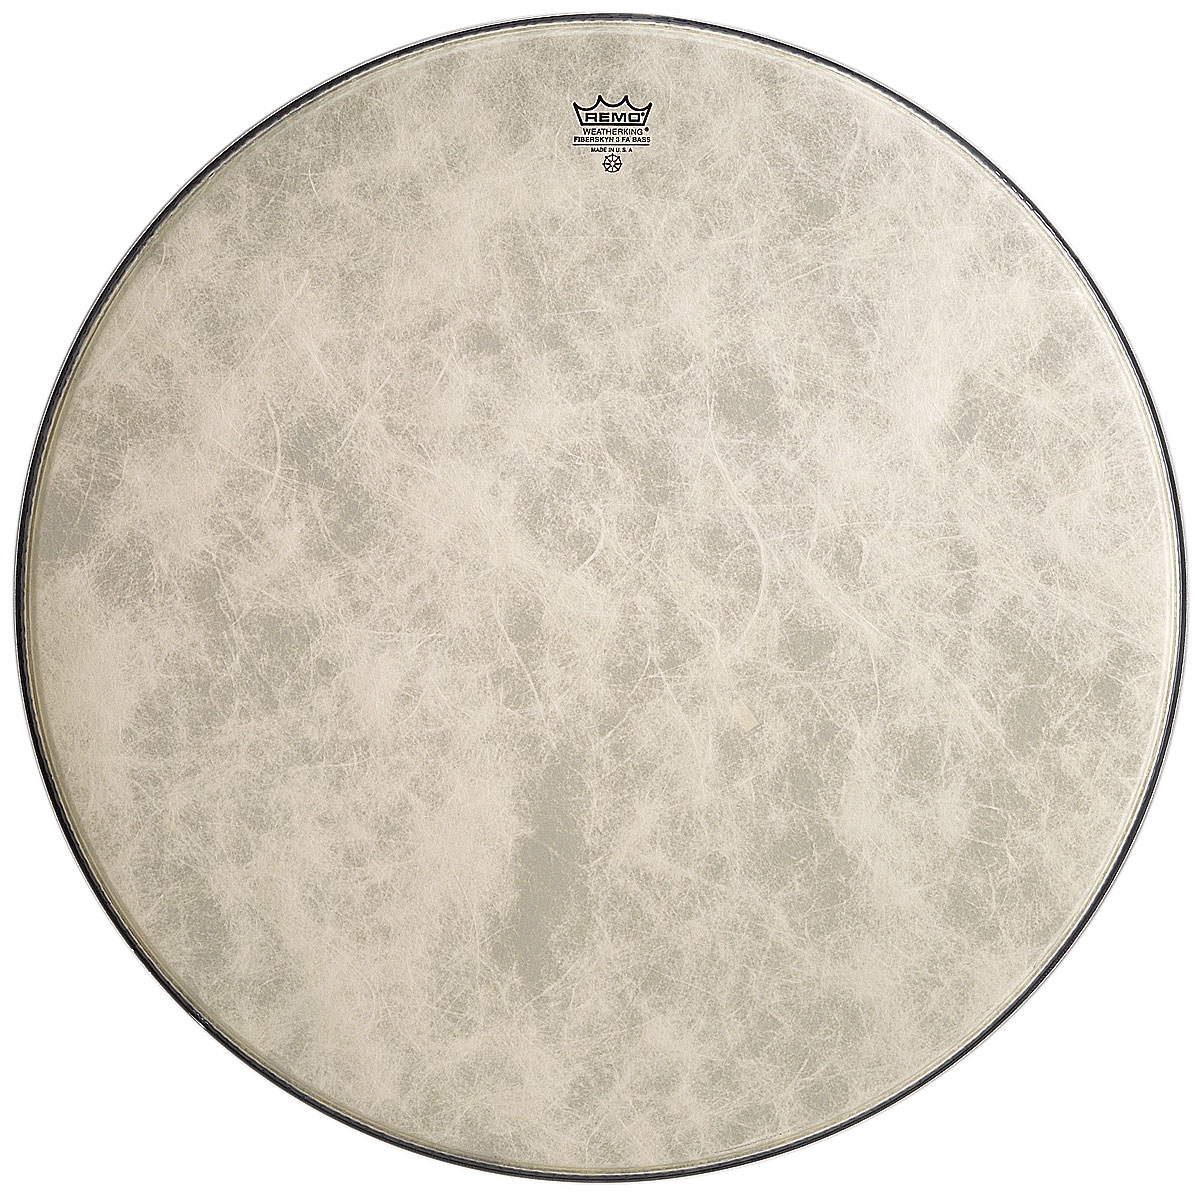 "Remo 22"" Ambassador Fiberskyn Bass Drum Head"